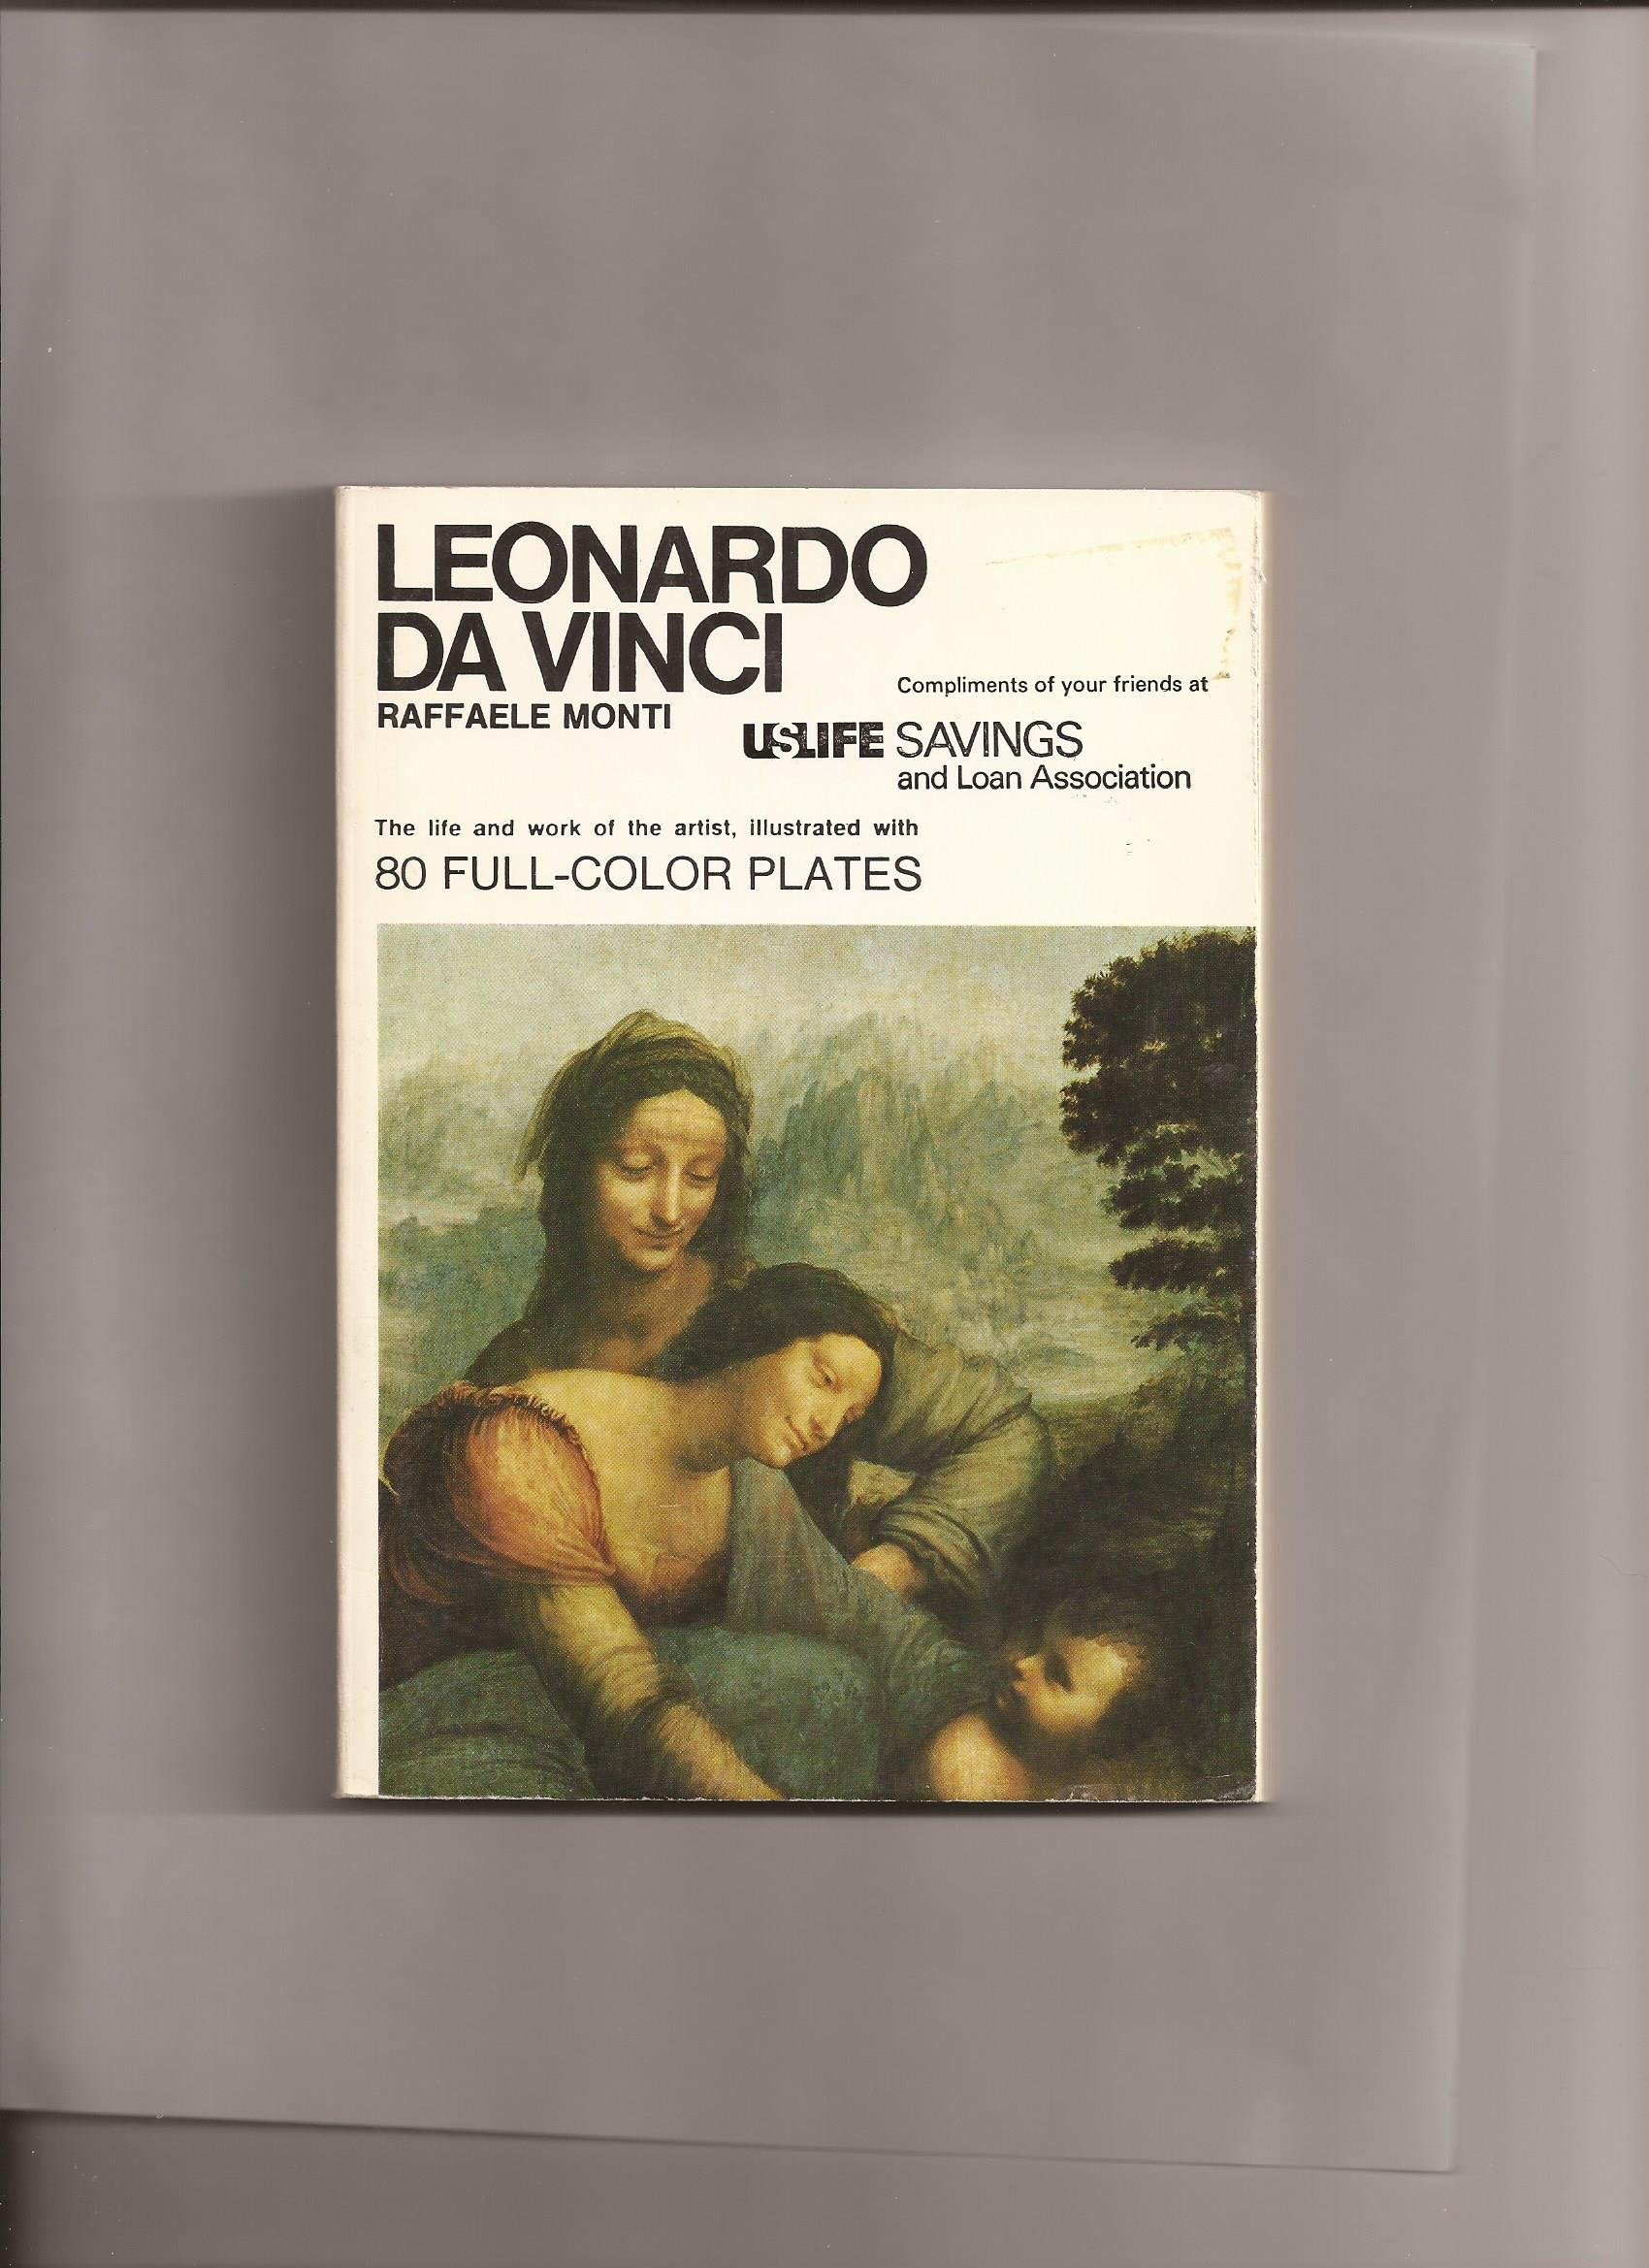 leonardo da vinci the life and work of the artist illustrated with 80 full color plates